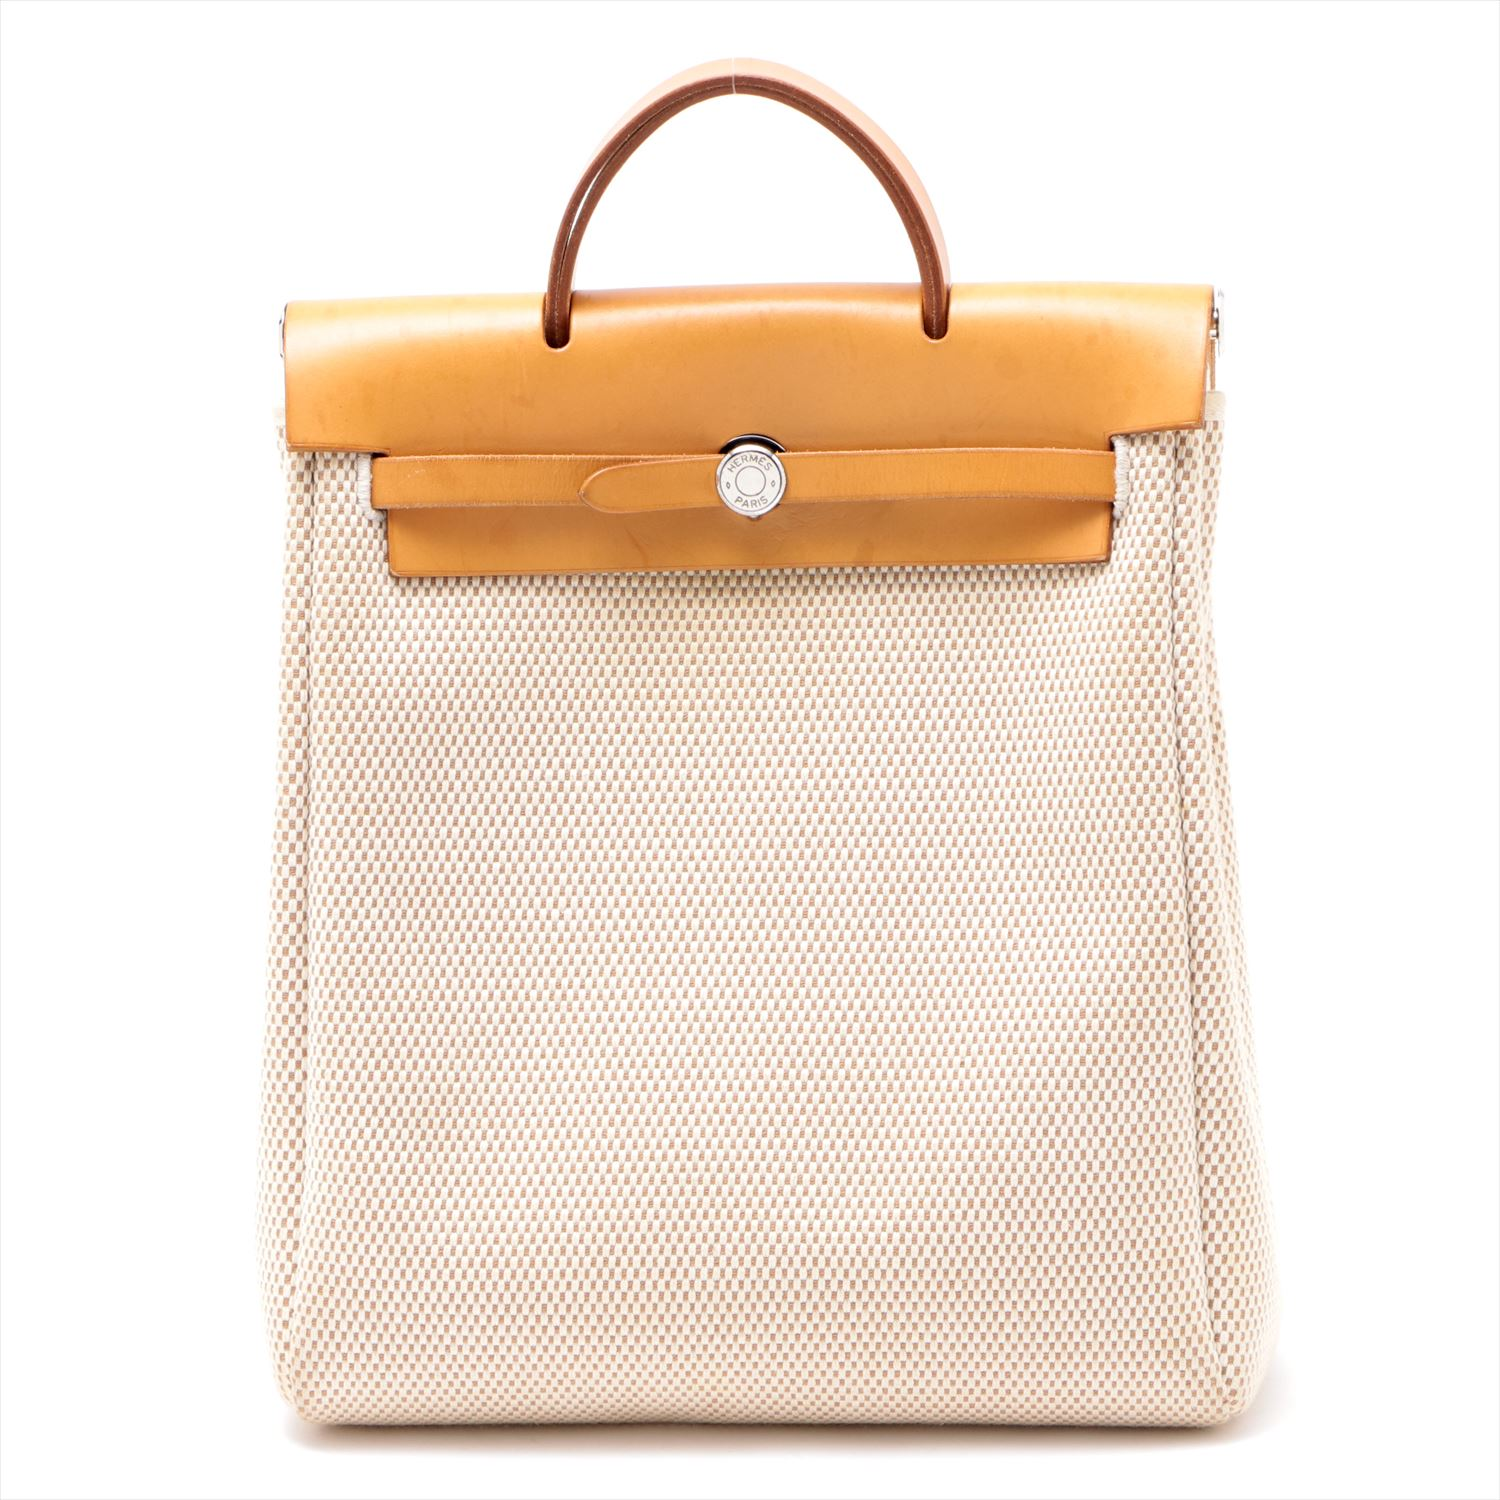 [Used goods] Hermes ale bag ad PM Toile GM Luc natural Silver hardware G: 2003 years